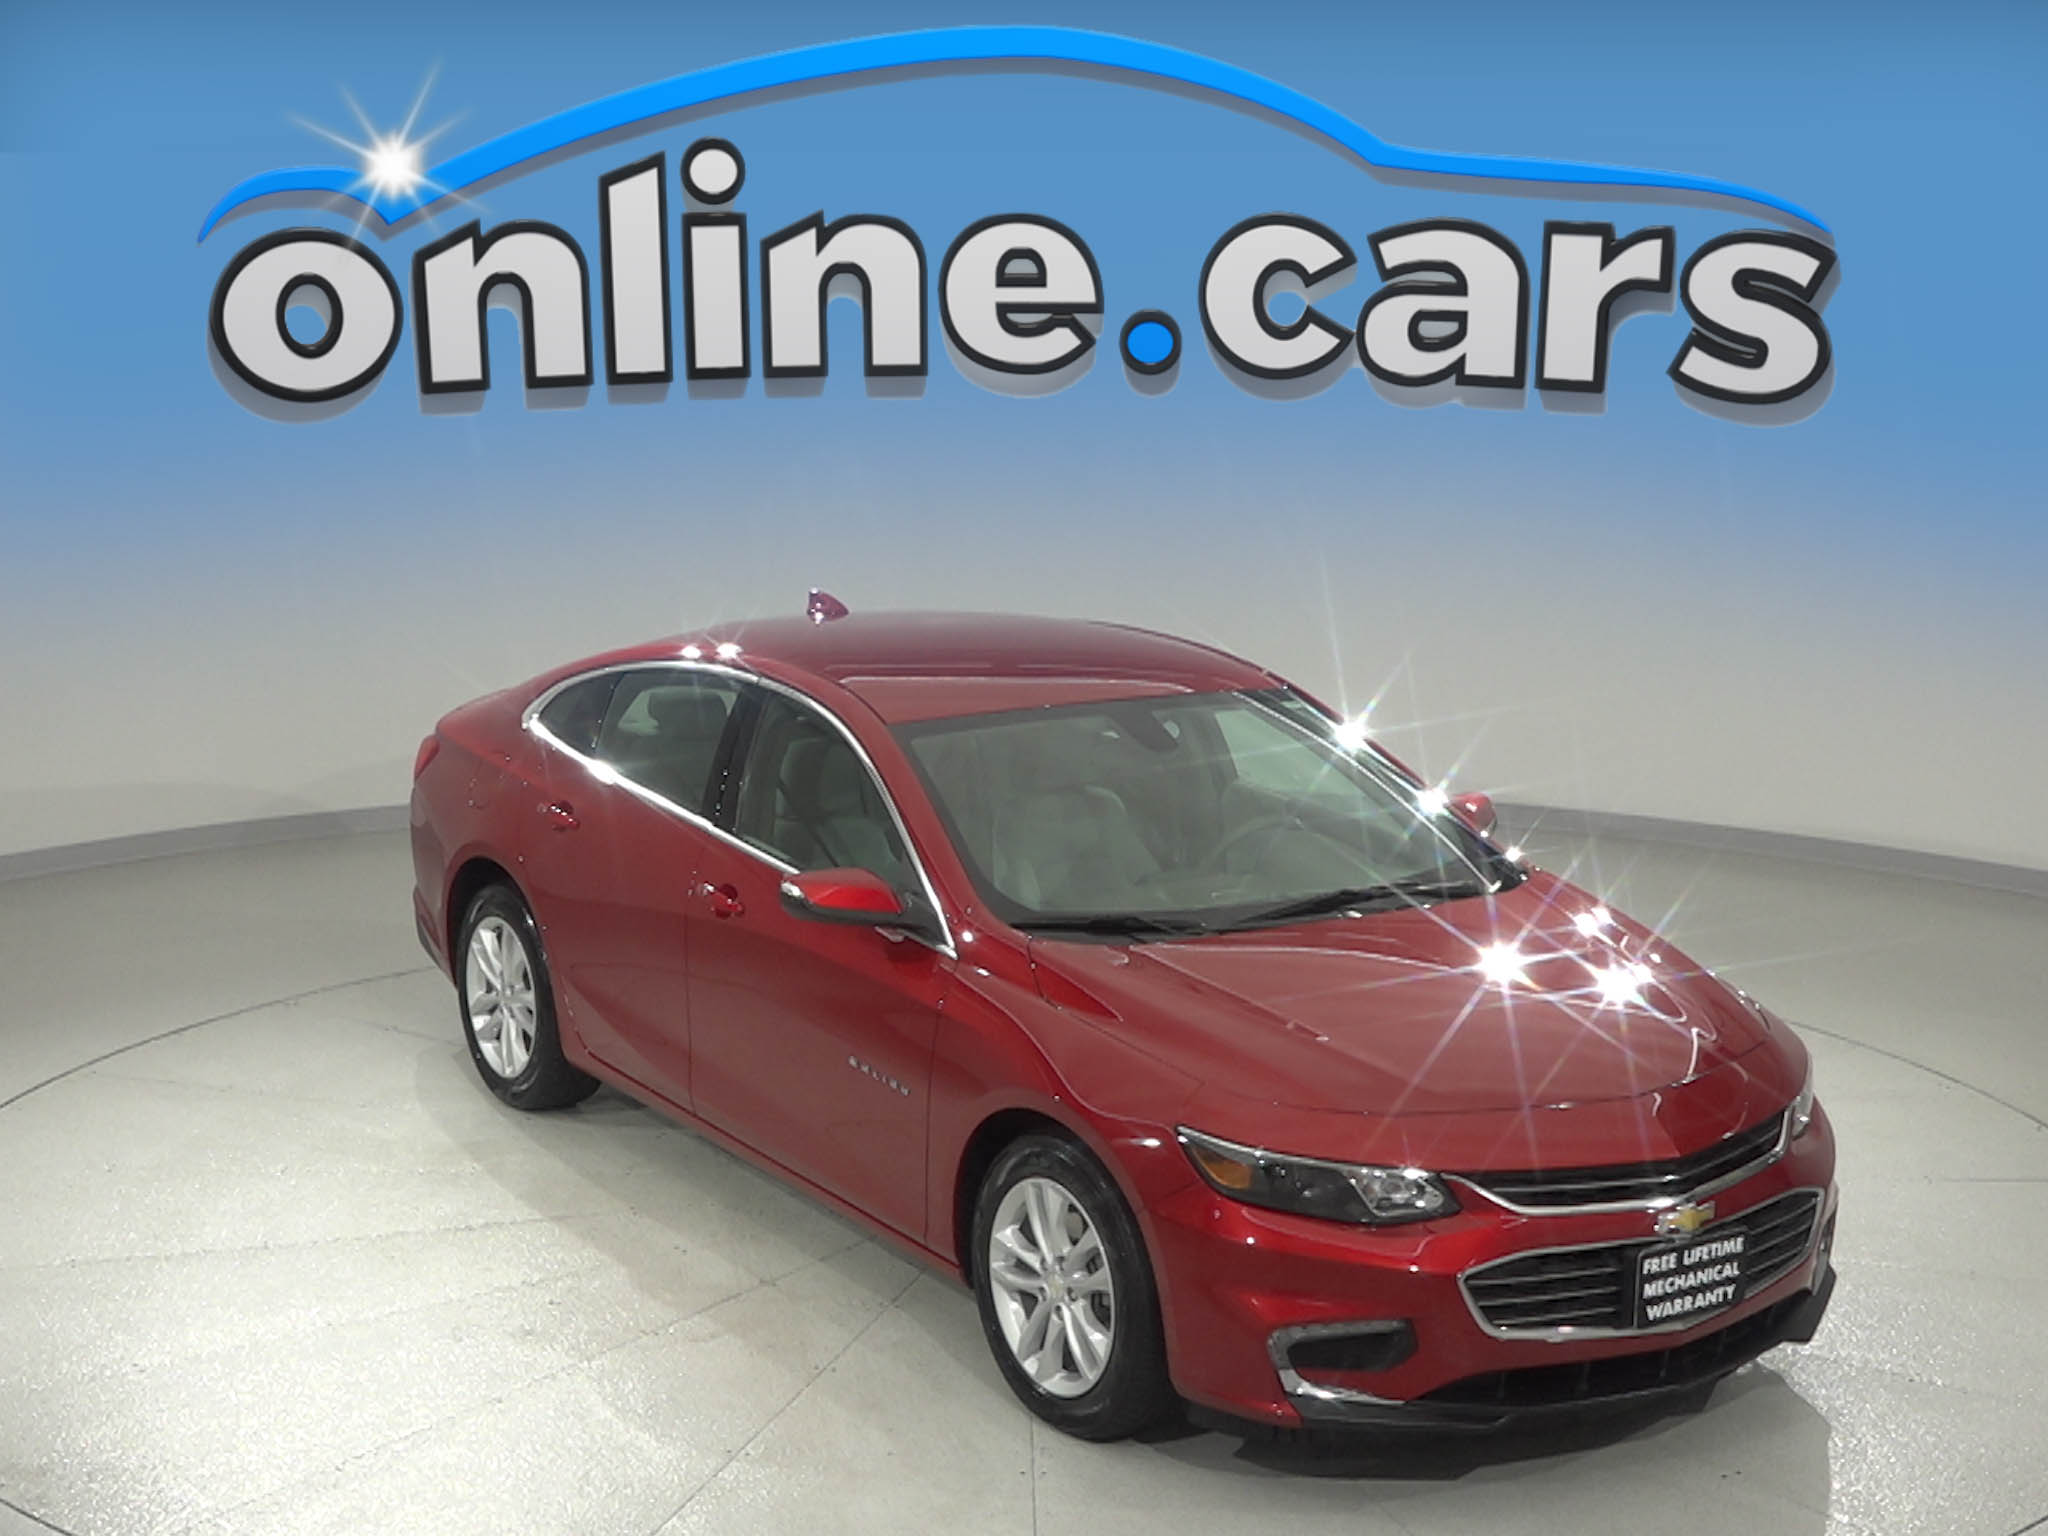 Pre Owned 2016 Chevrolet Malibu LT 4D Sedan in Cincinnati A GP